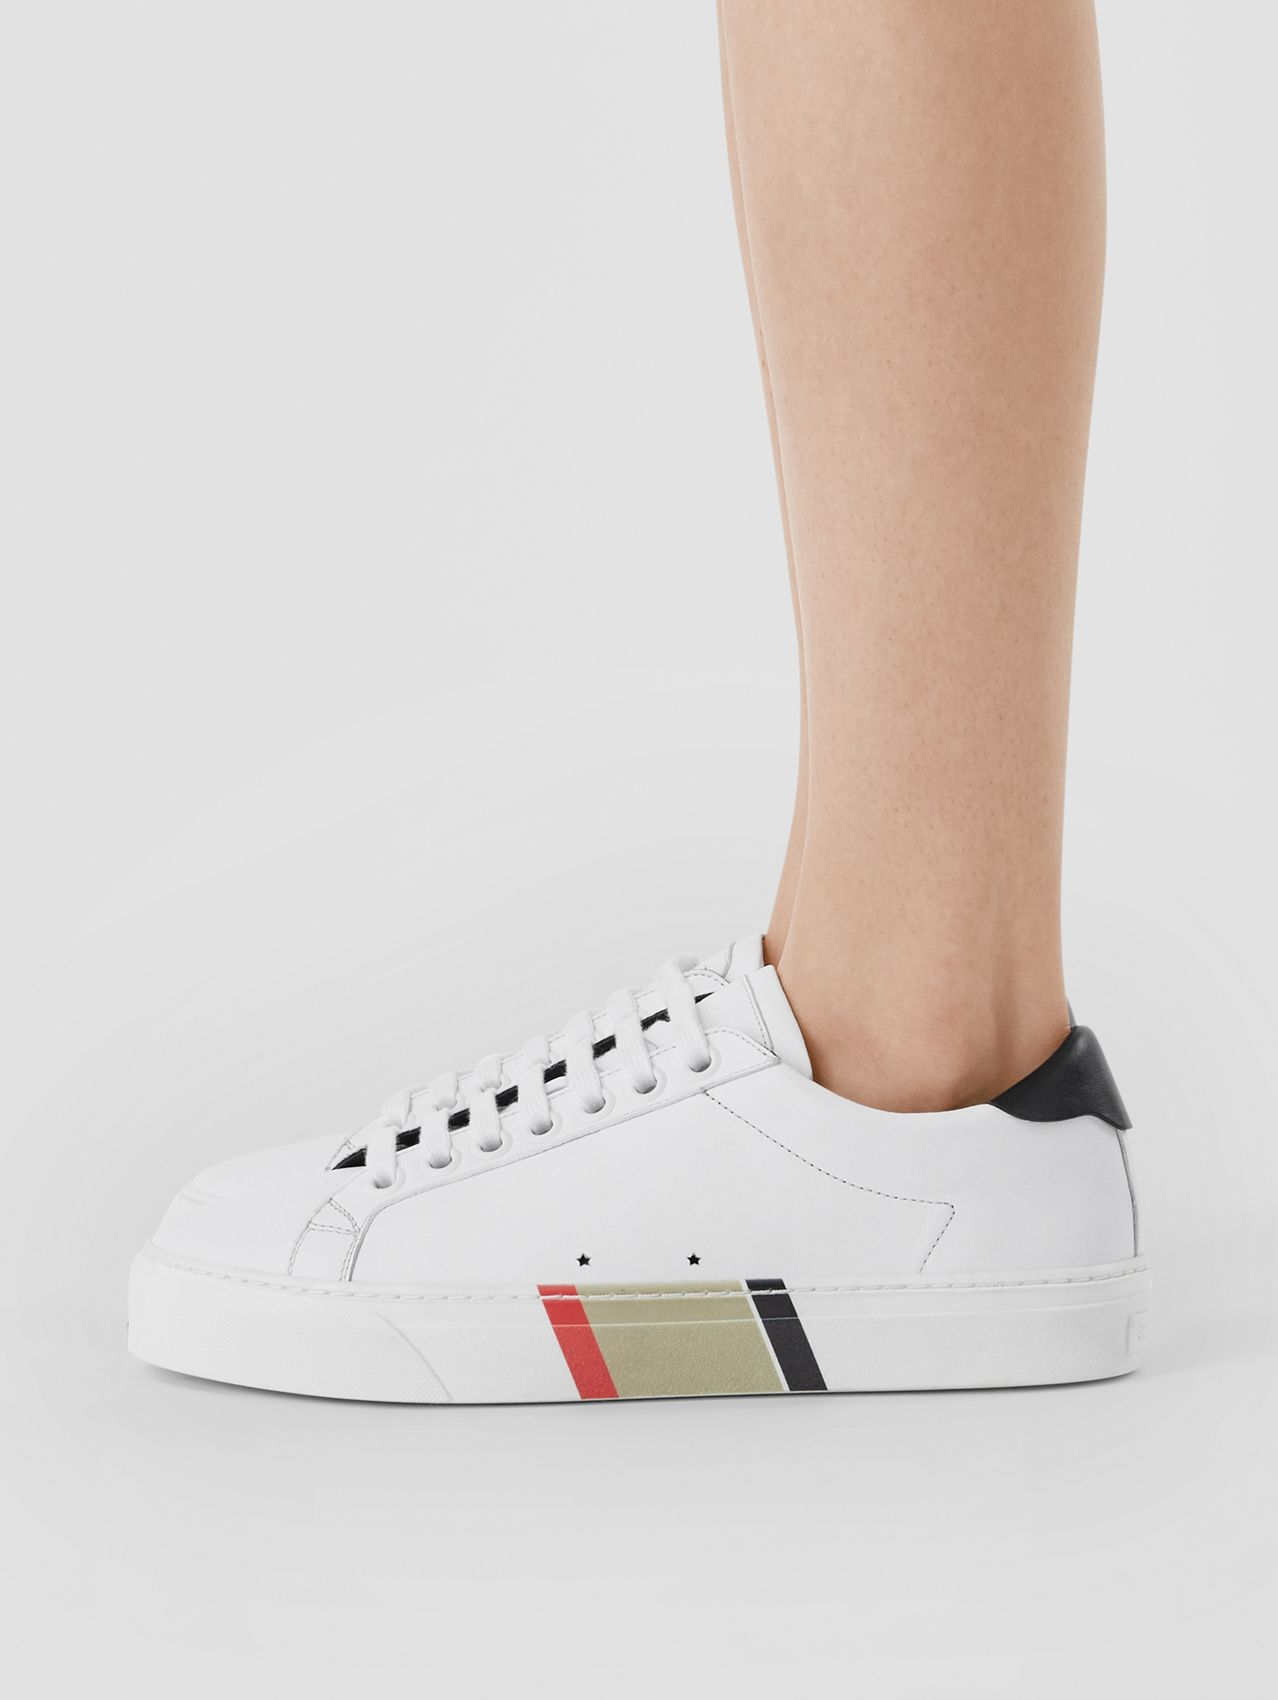 Bio-based Sole Stripe Print Leather Sneakers in Optic White